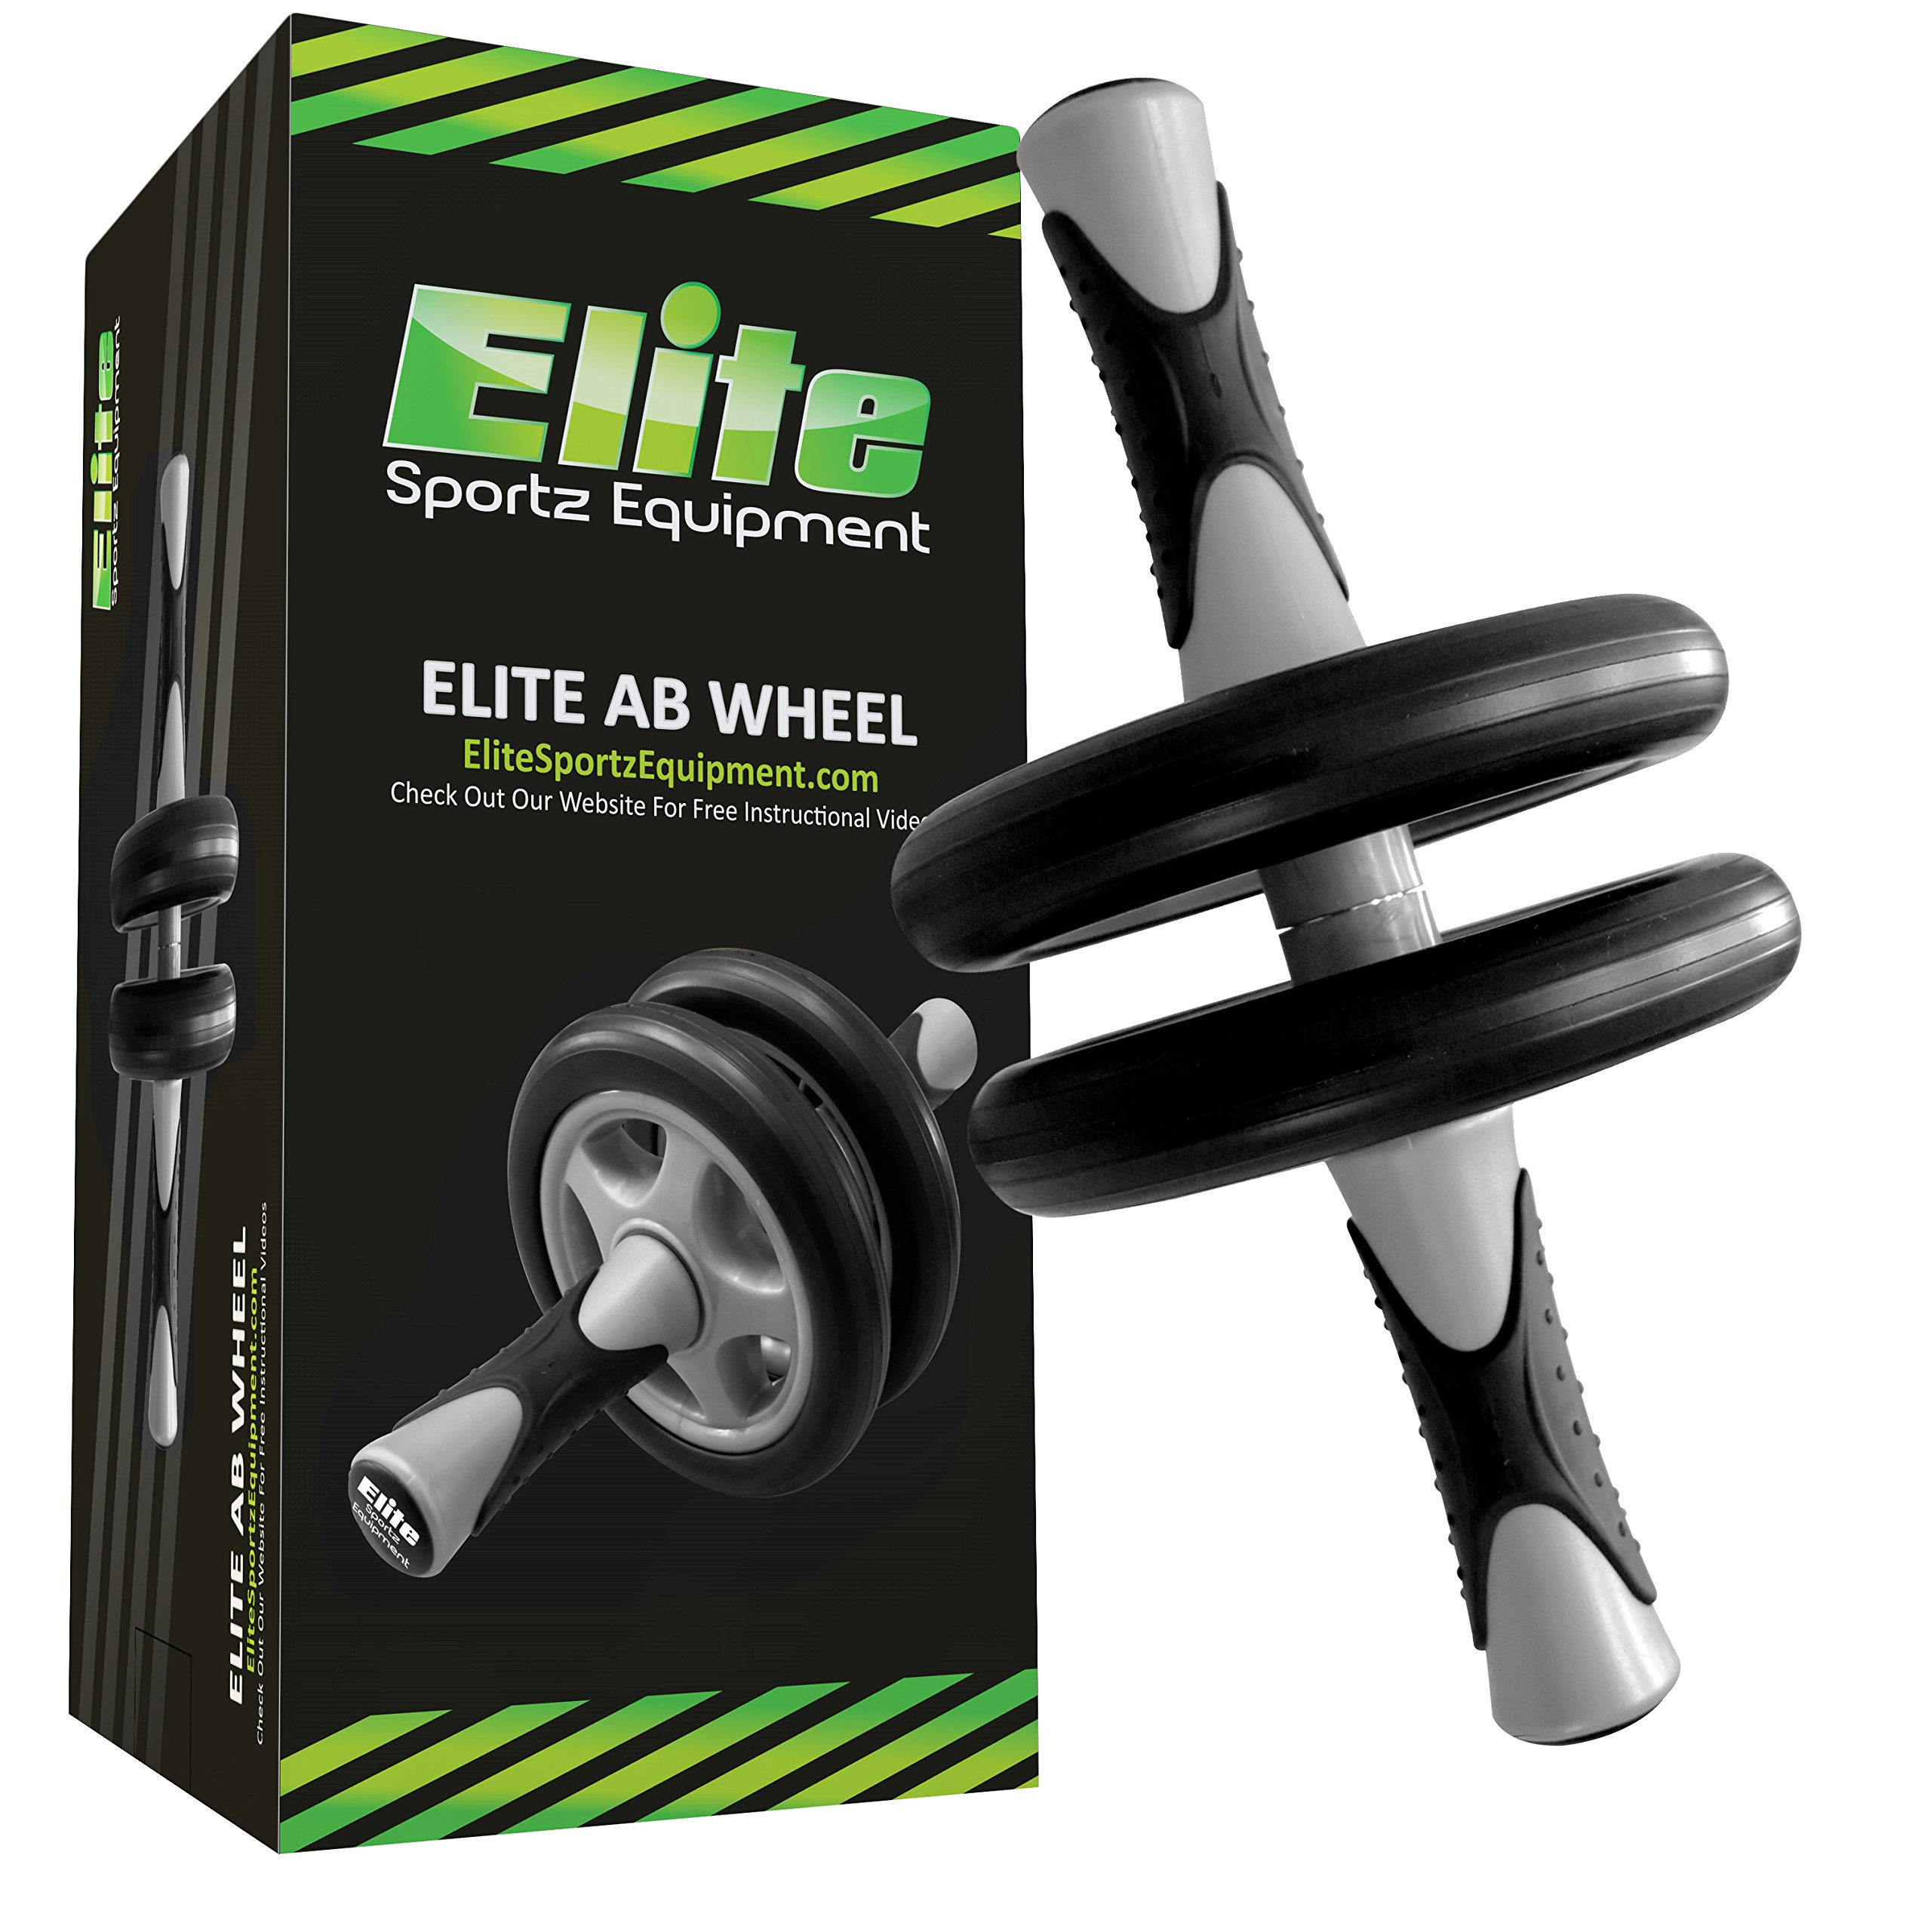 Elite Sportz Ab Wheel Roller - This Ab Exercise Wheel has Dual Wheels for Extra Stability, Comes Fully Assembled, is Sturdy, Smooth Rolling, and has Very Comfortable Non- Slip Handles by Elite Sportz Equipment